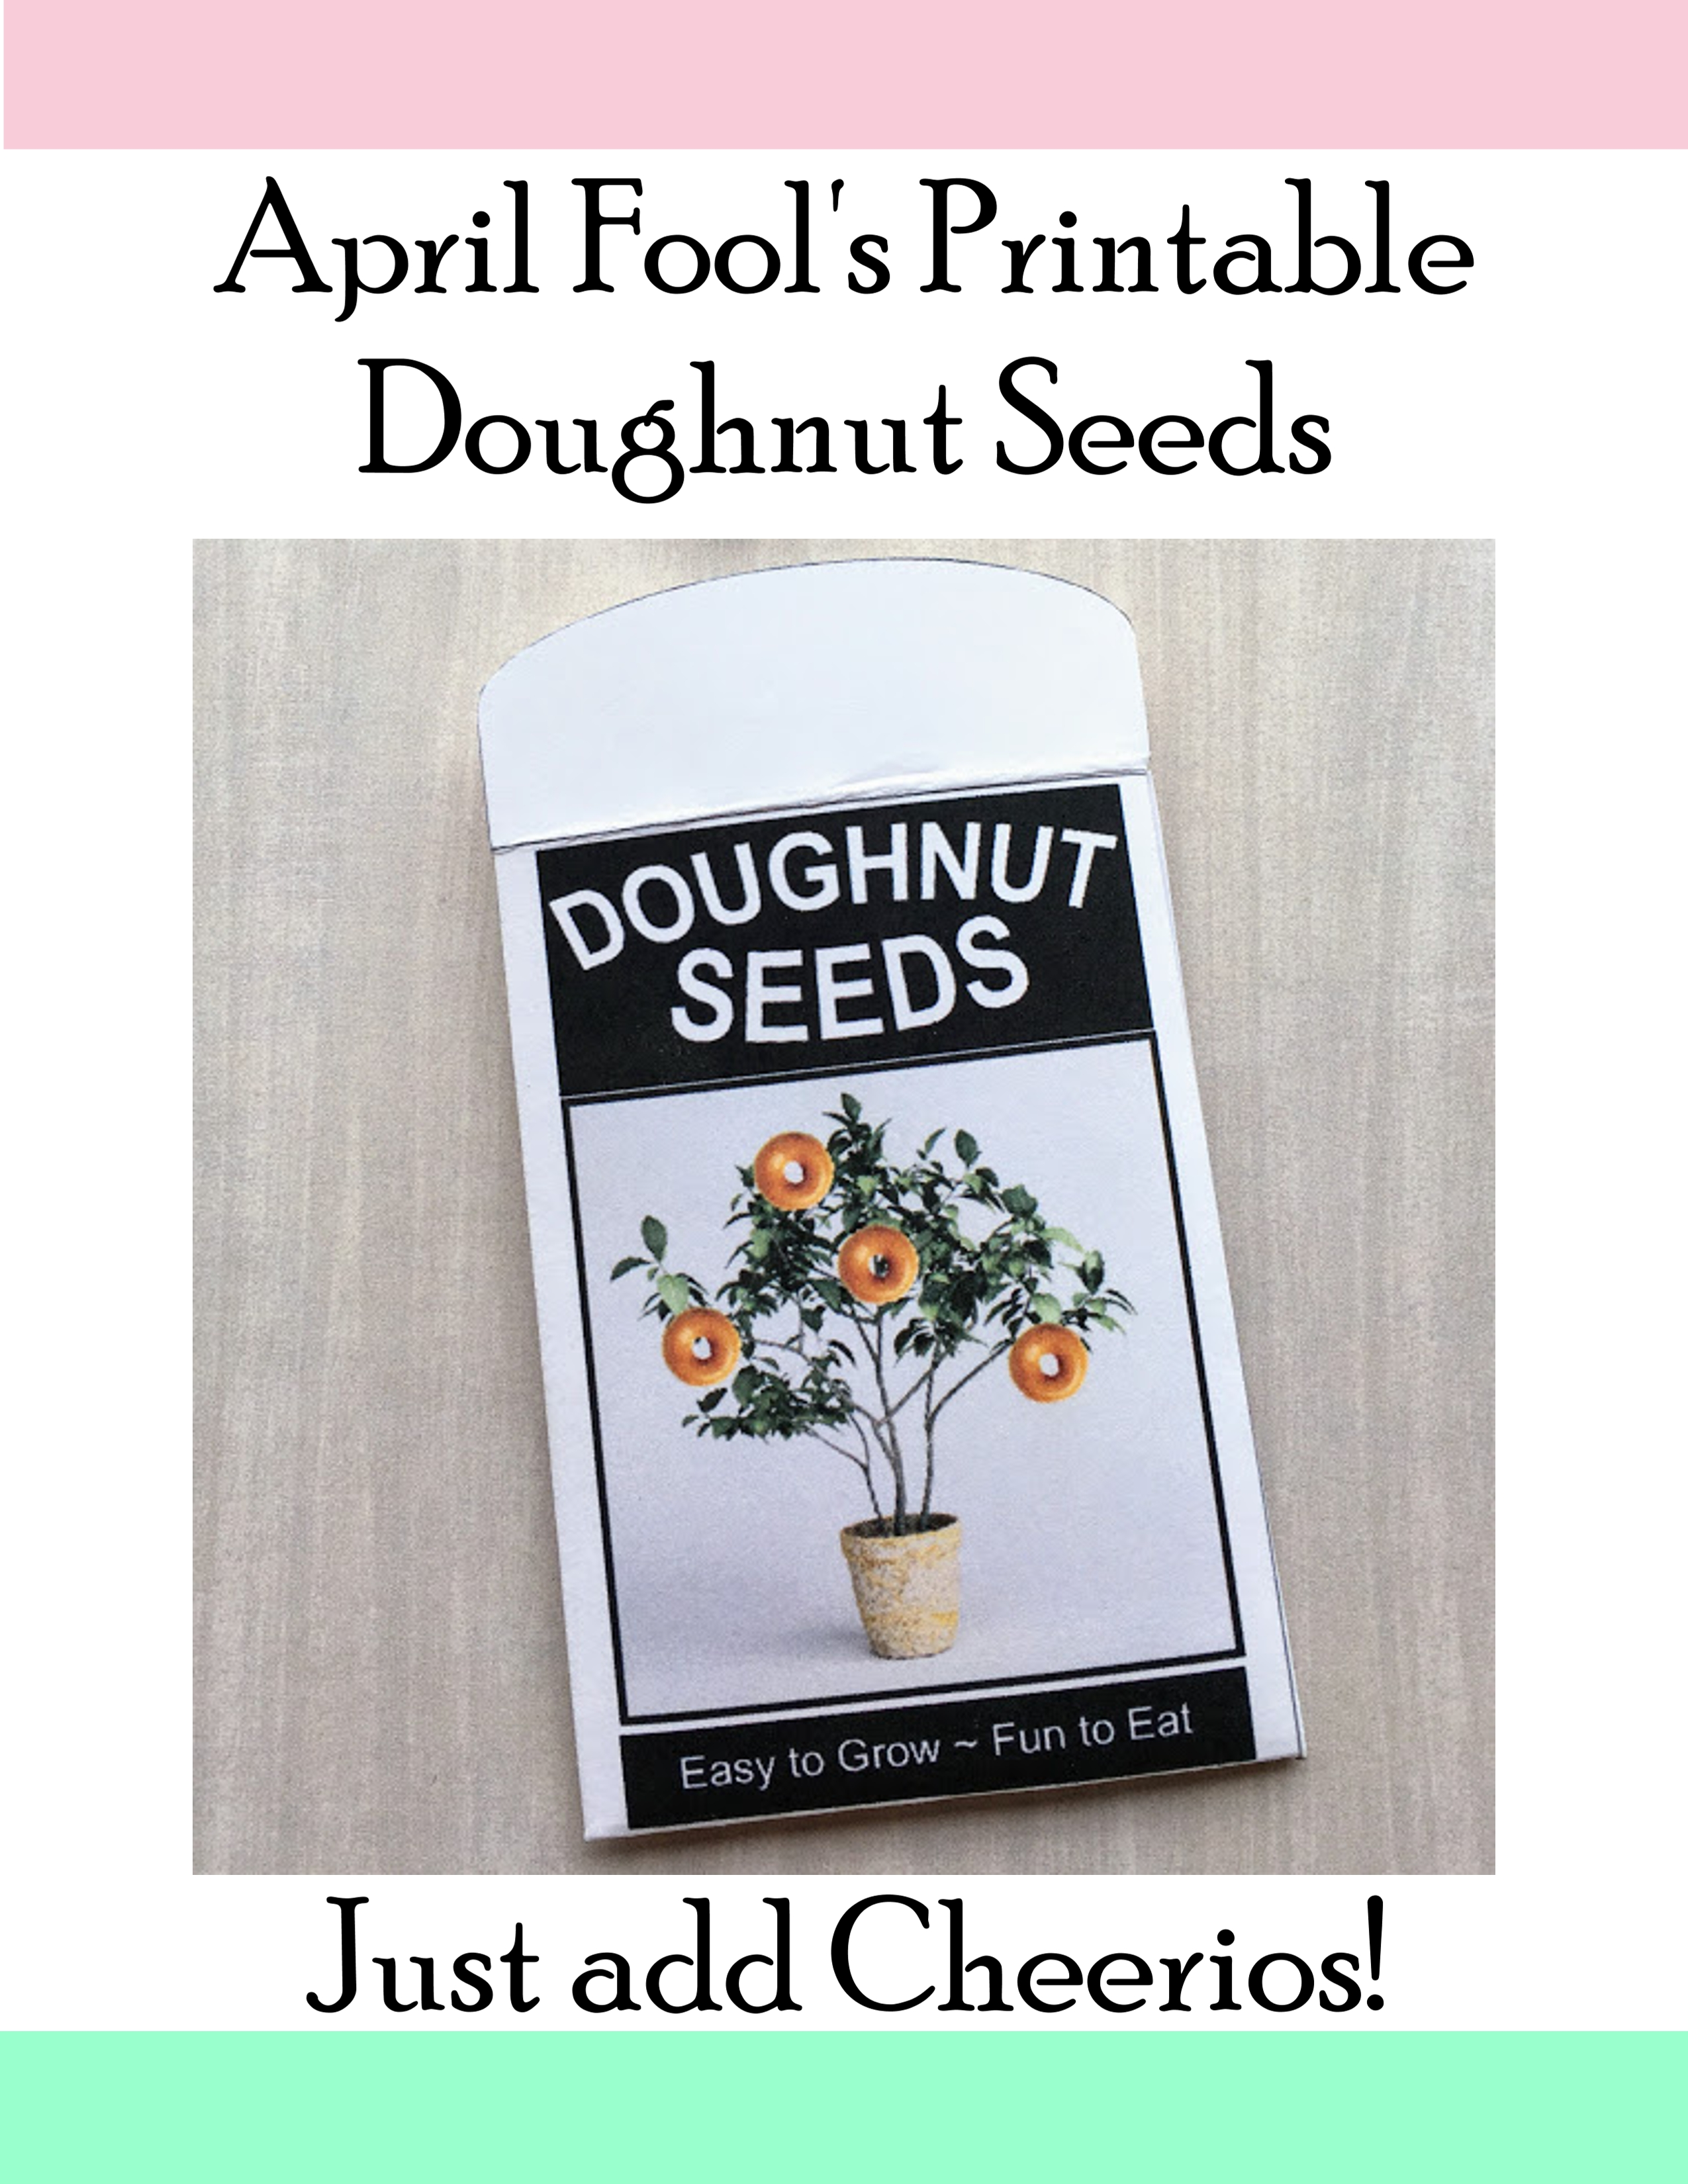 April Fool's Doughnut Seeds Free Printable for April Fool's Day Seed Packet